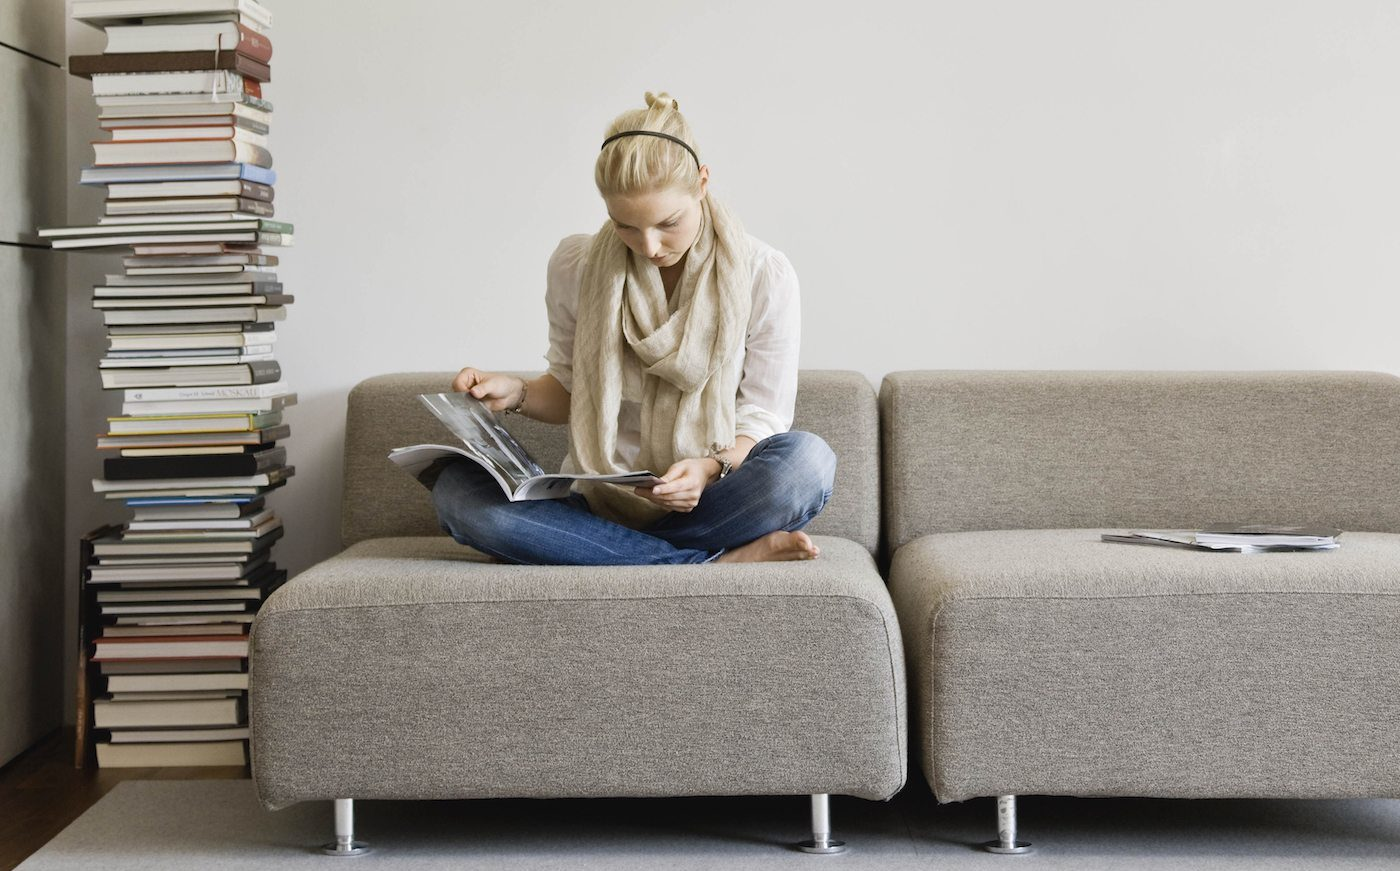 The neatest people in the world share 7 secrets to eliminating clutter in your life